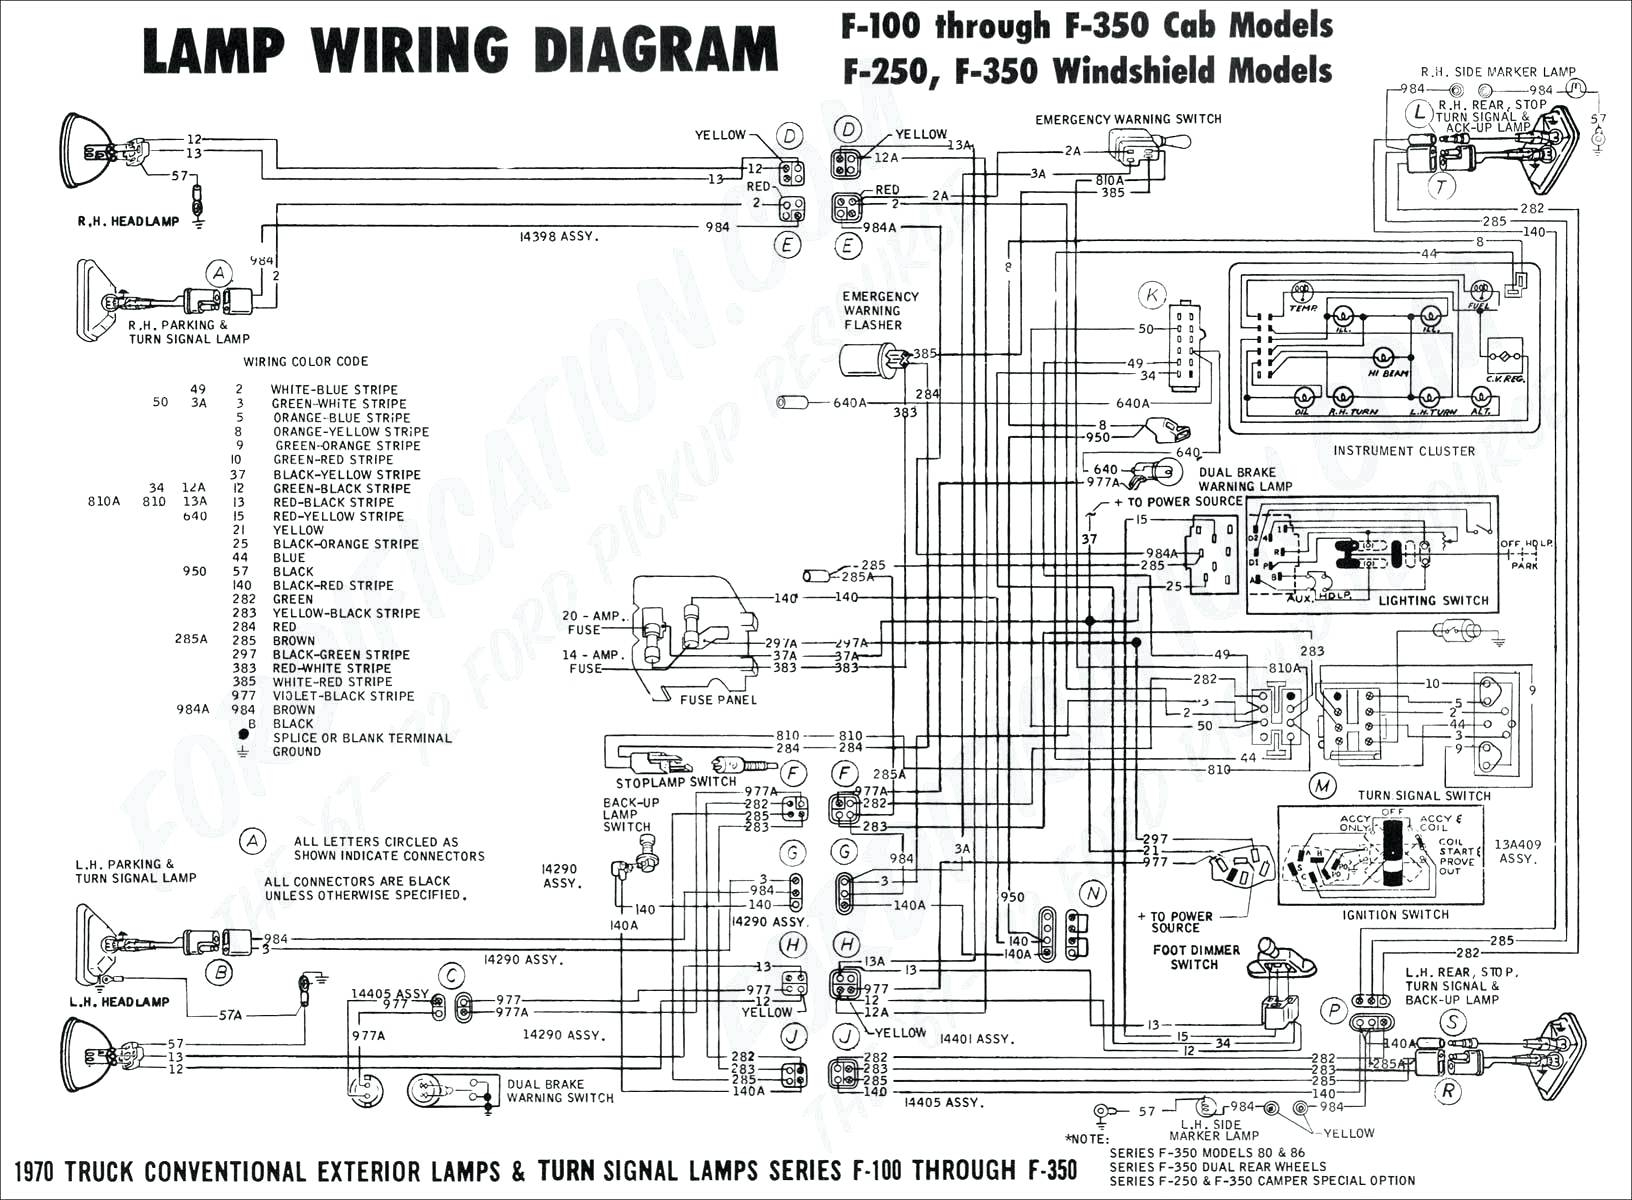 DIAGRAM] 1994 Dodge Ram 2500 Wiring Diagram FULL Version HD Quality Wiring  Diagram - CONVERTPDFFORM.CAFESECRET.FRCafesecret